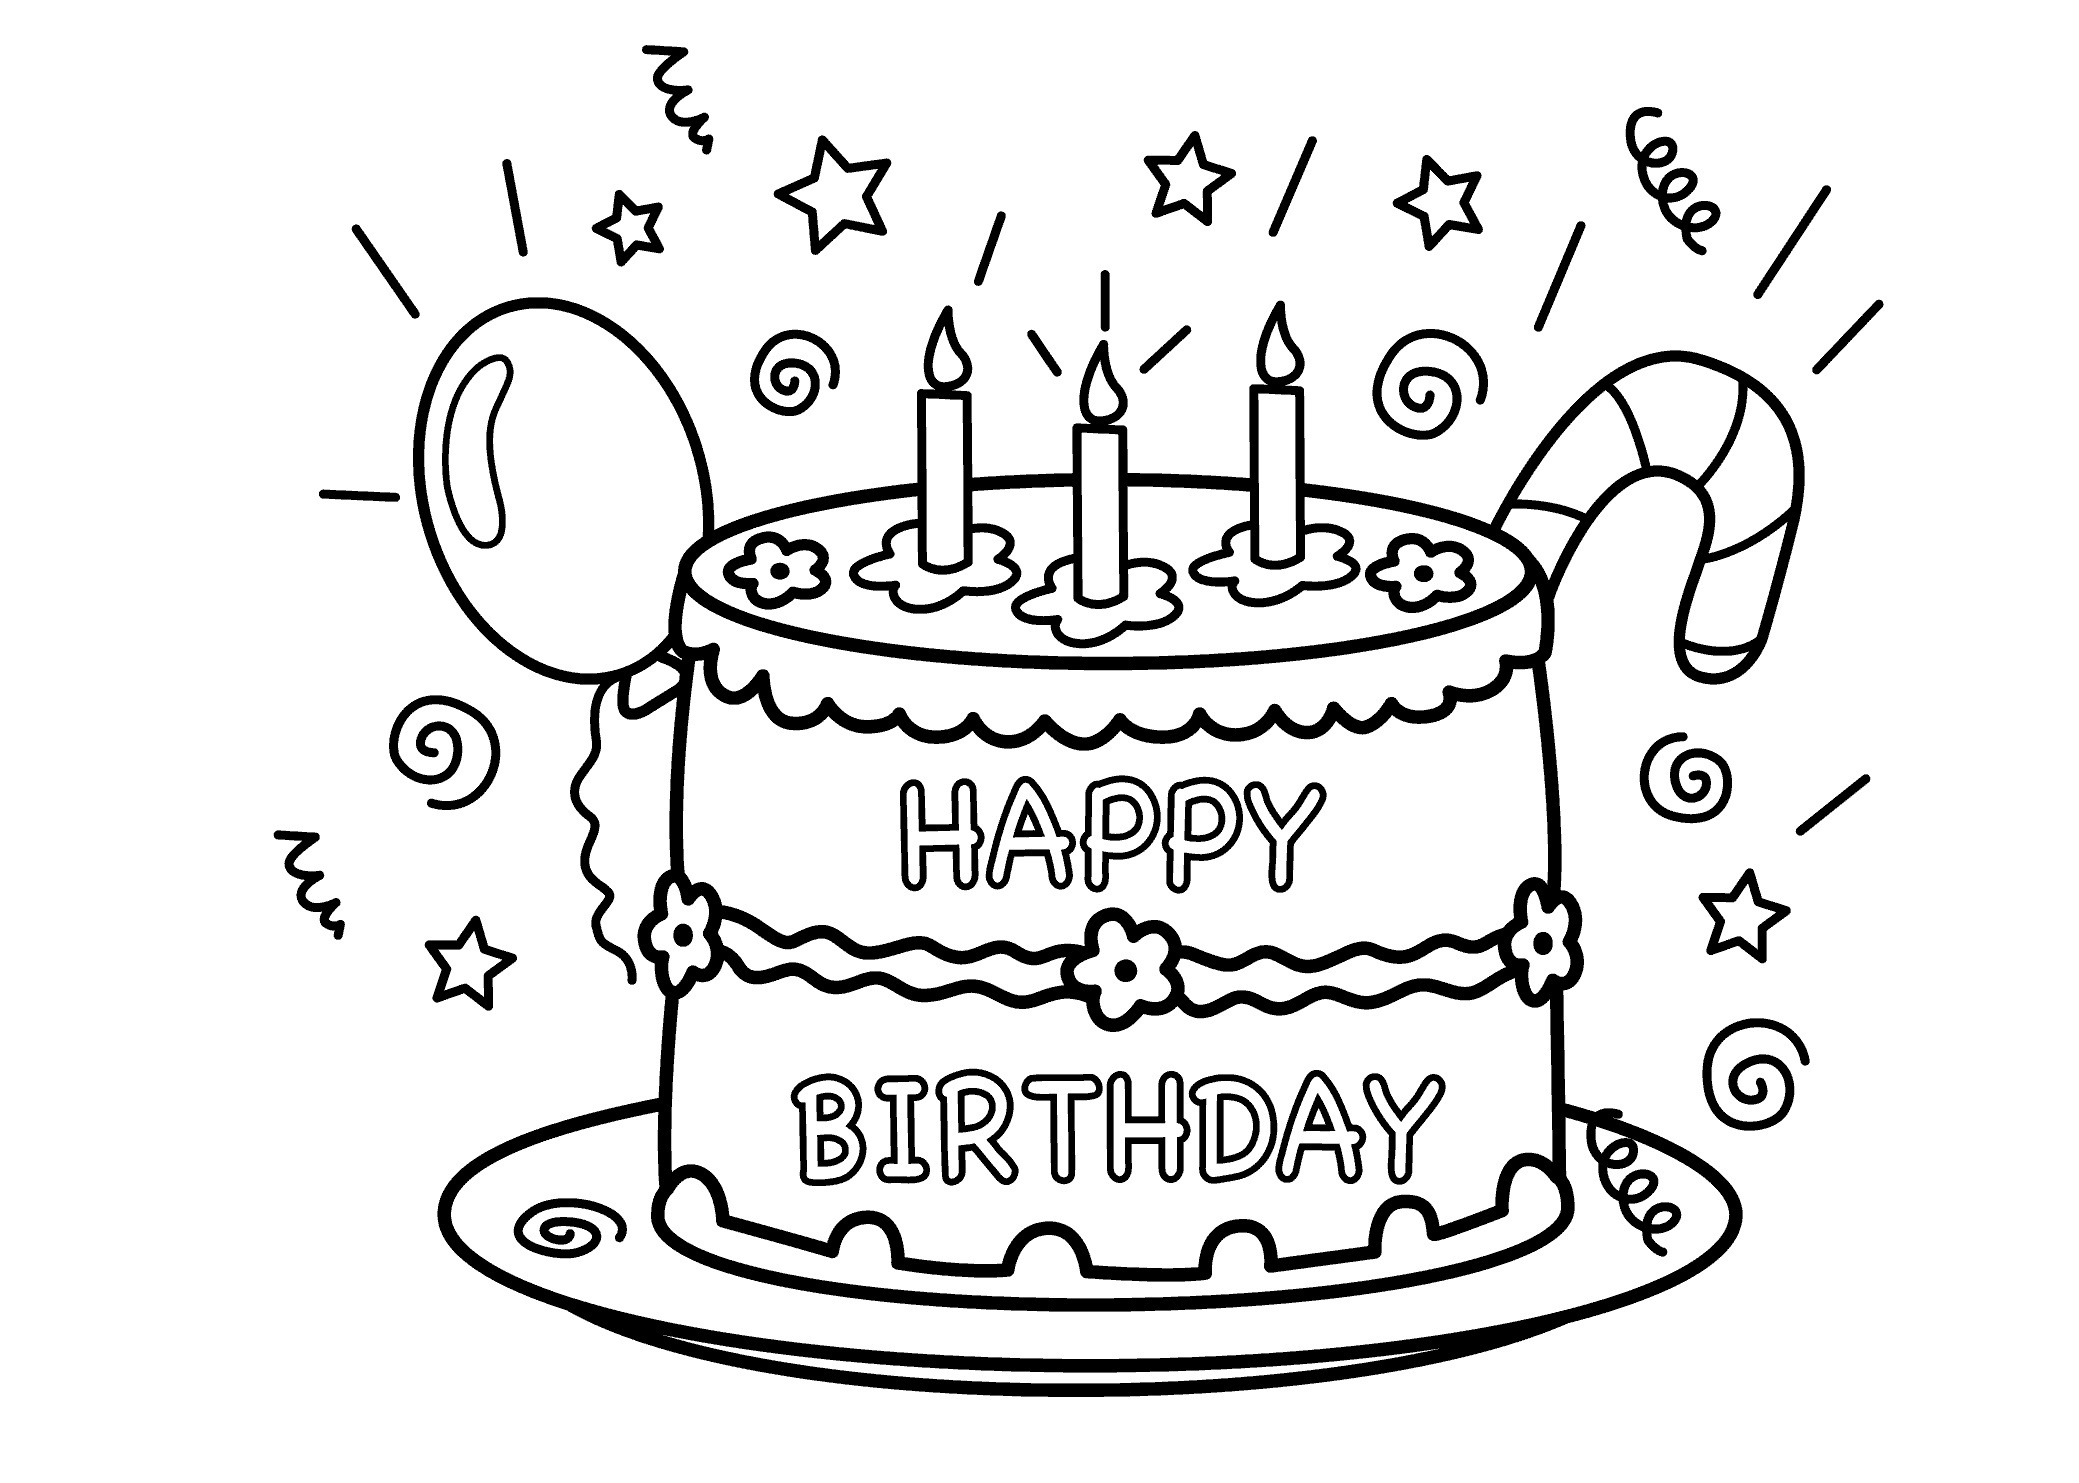 Free Printable Birthday Cake Coloring Pages For Kids Happy Birthday Coloring Page